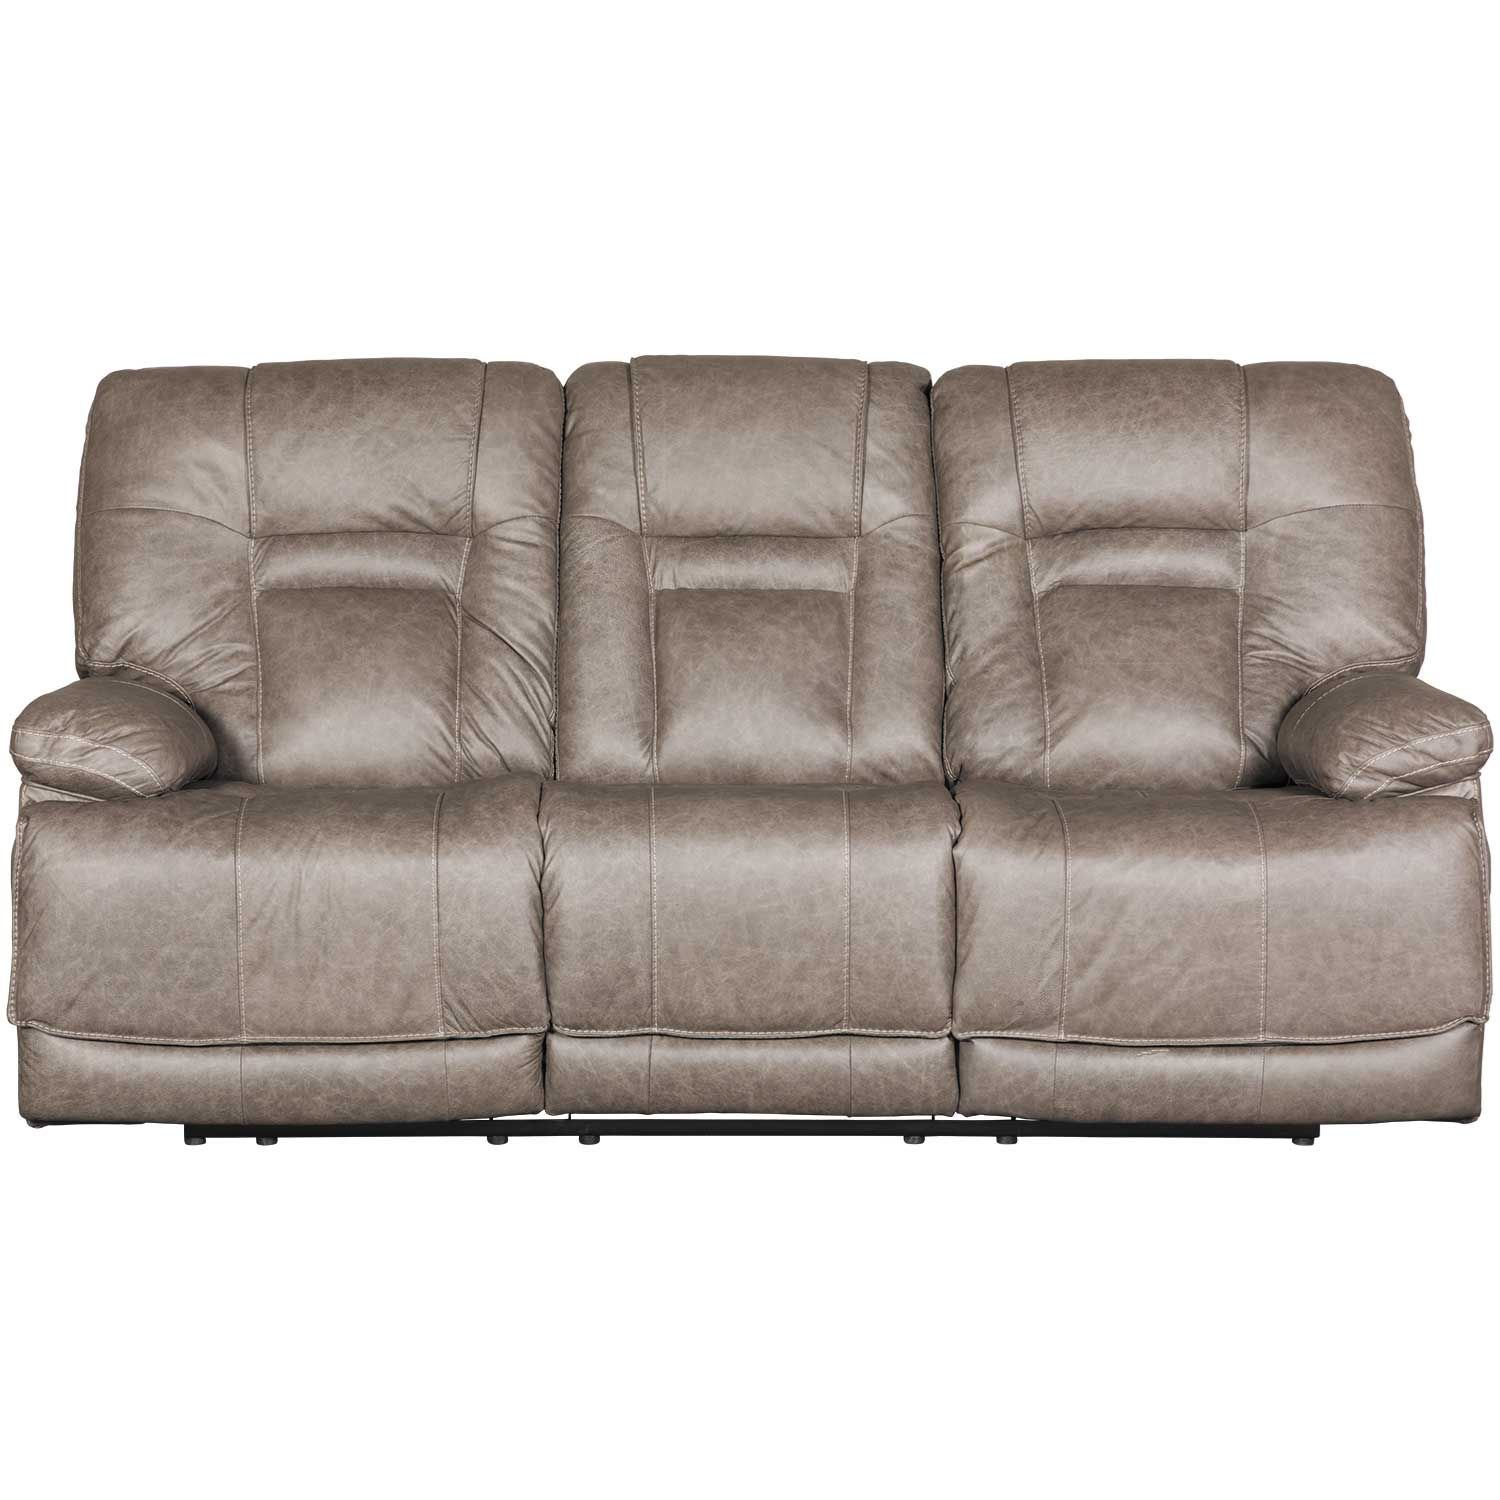 Wurstrow Smoke Italian Leather Power Reclining Sofa U5460215